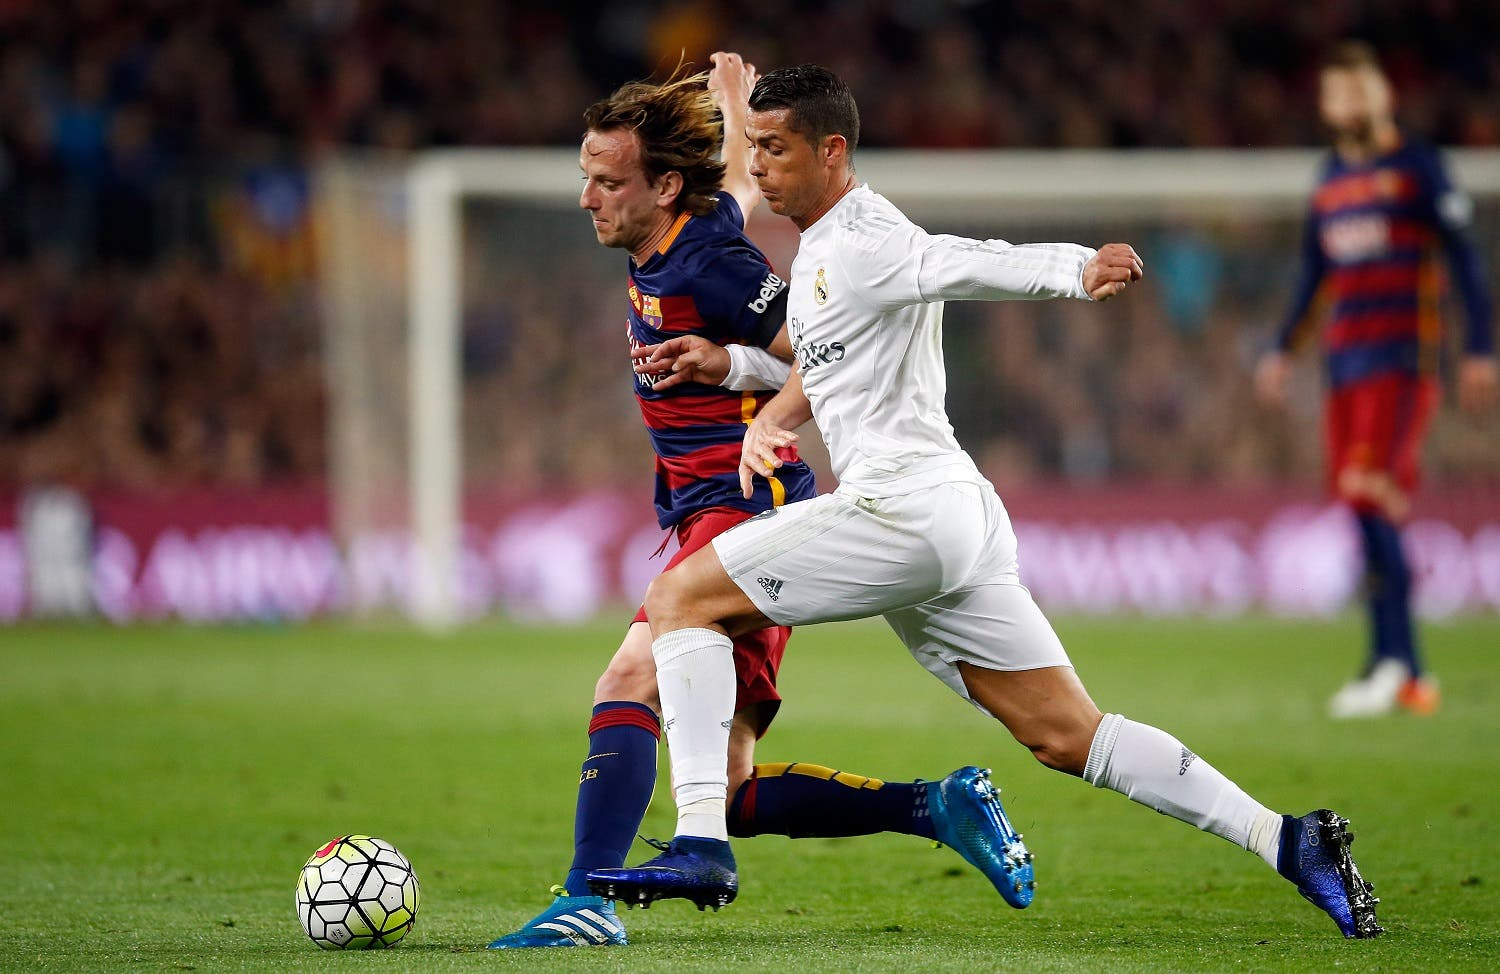 Barcelona's Ivan Rakitic, left, fights for the ball with Real Madrid's Cristiano Ronaldo during a Spanish La Liga soccer match between Barcelona and Real Madrid, dubbed 'el clasico', at the Camp Nou stadium in Barcelona, Spain, Saturday, April 2, 2016. (AP)